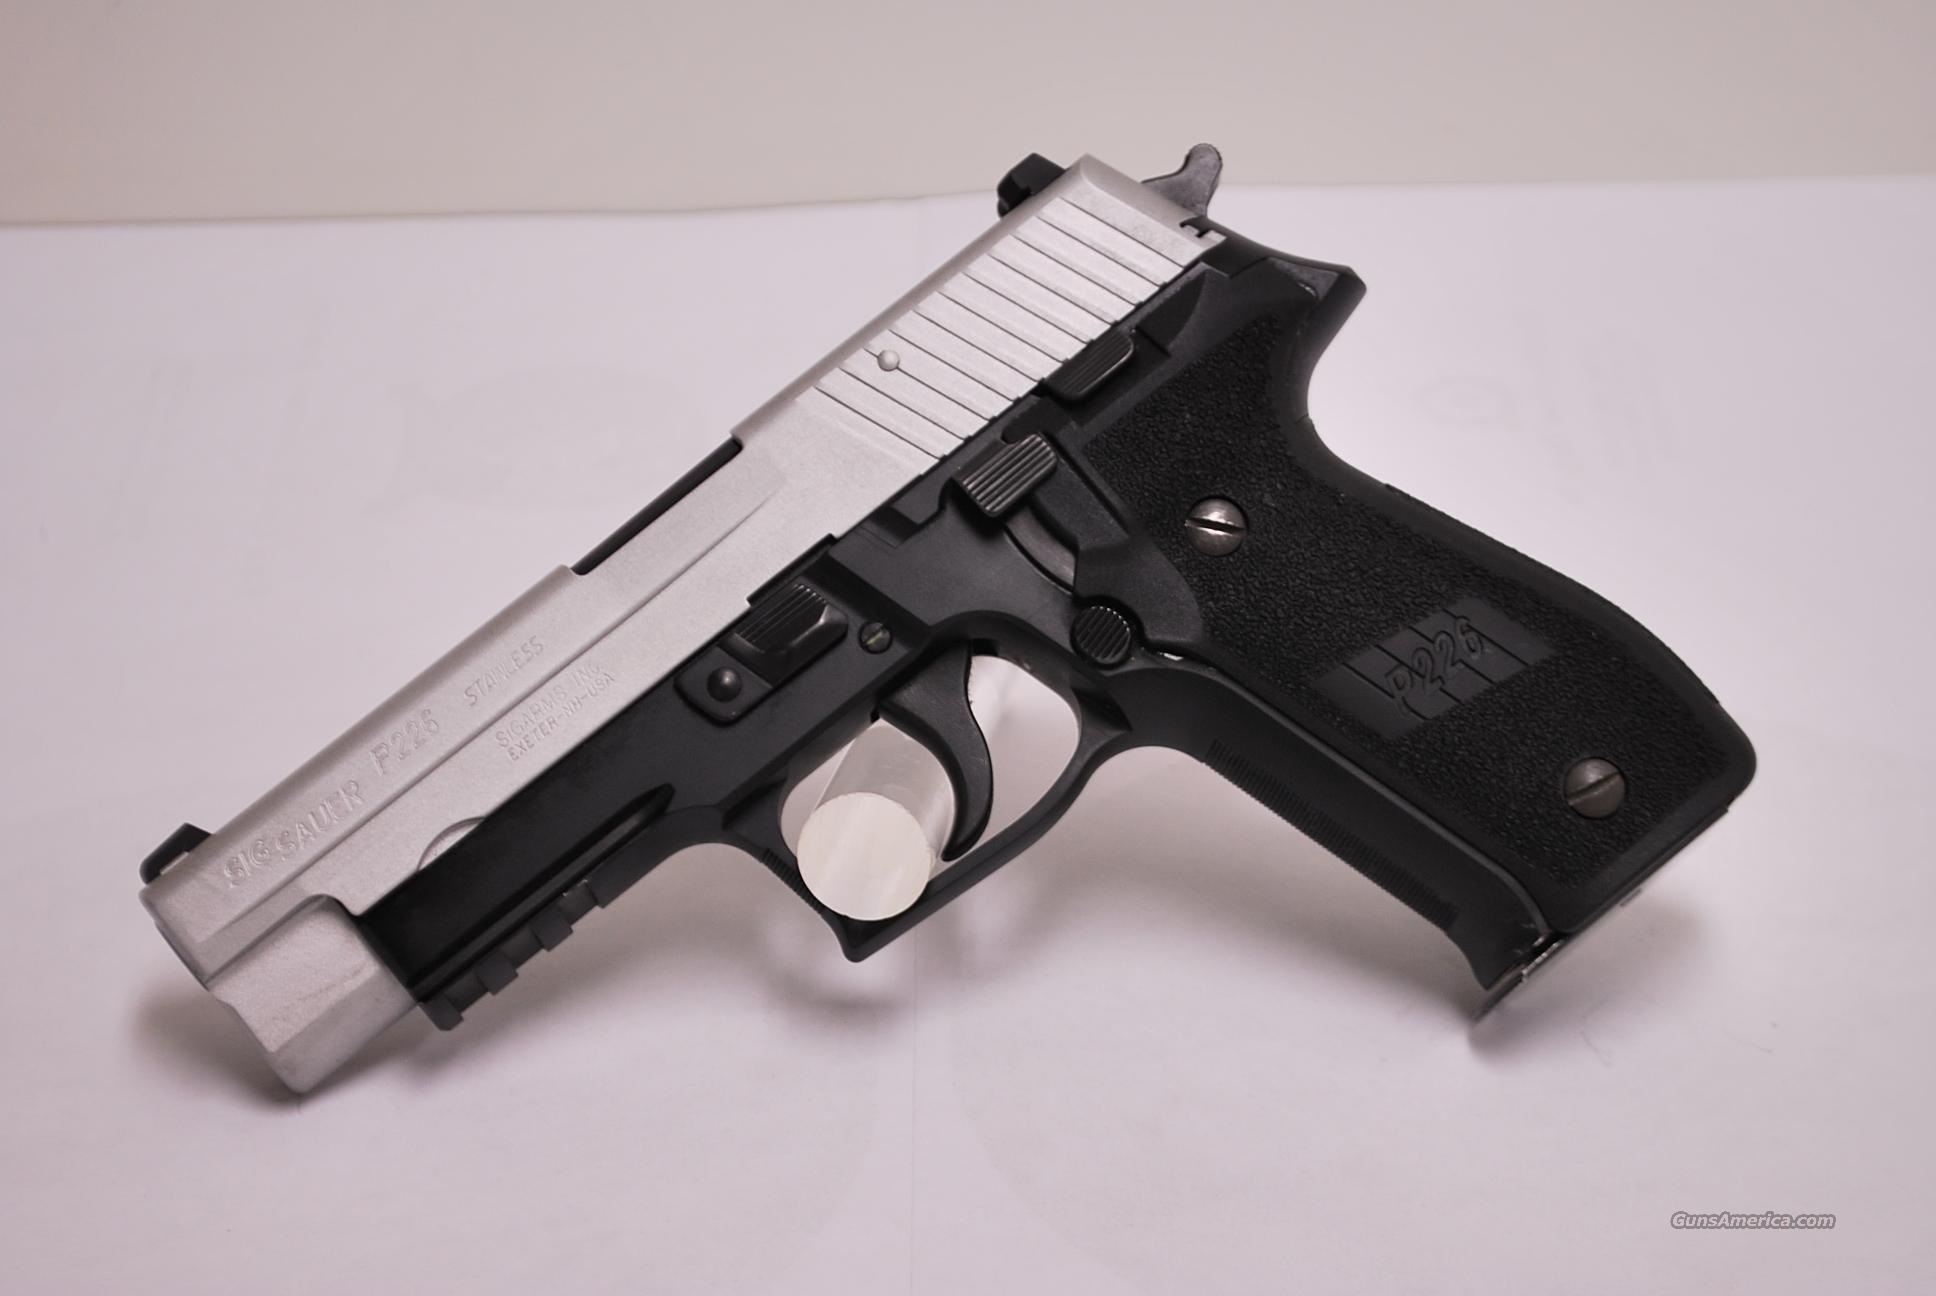 Sig Sauer P226, 9mm Para, Stainless Slide  Guns > Pistols > Sig - Sauer/Sigarms Pistols > P226